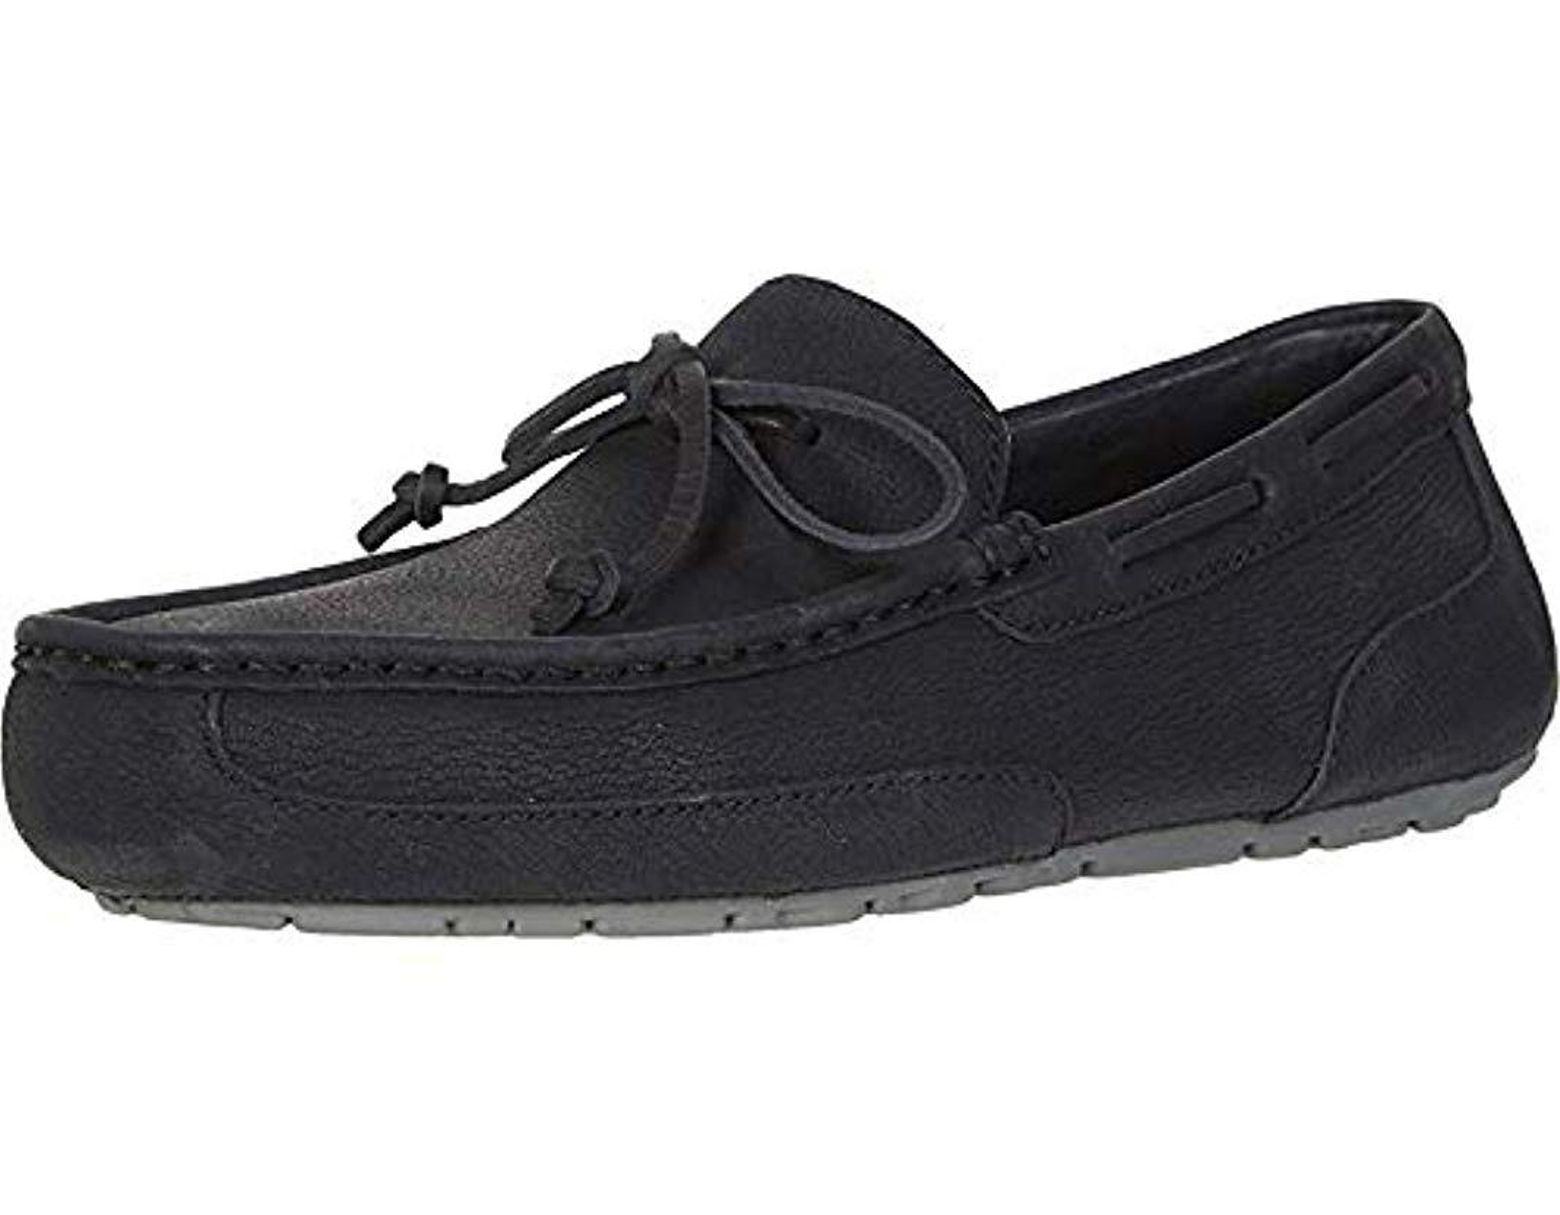 06e26d18f71 UGG Chester Ts Driving Style Loafer in Black for Men - Lyst